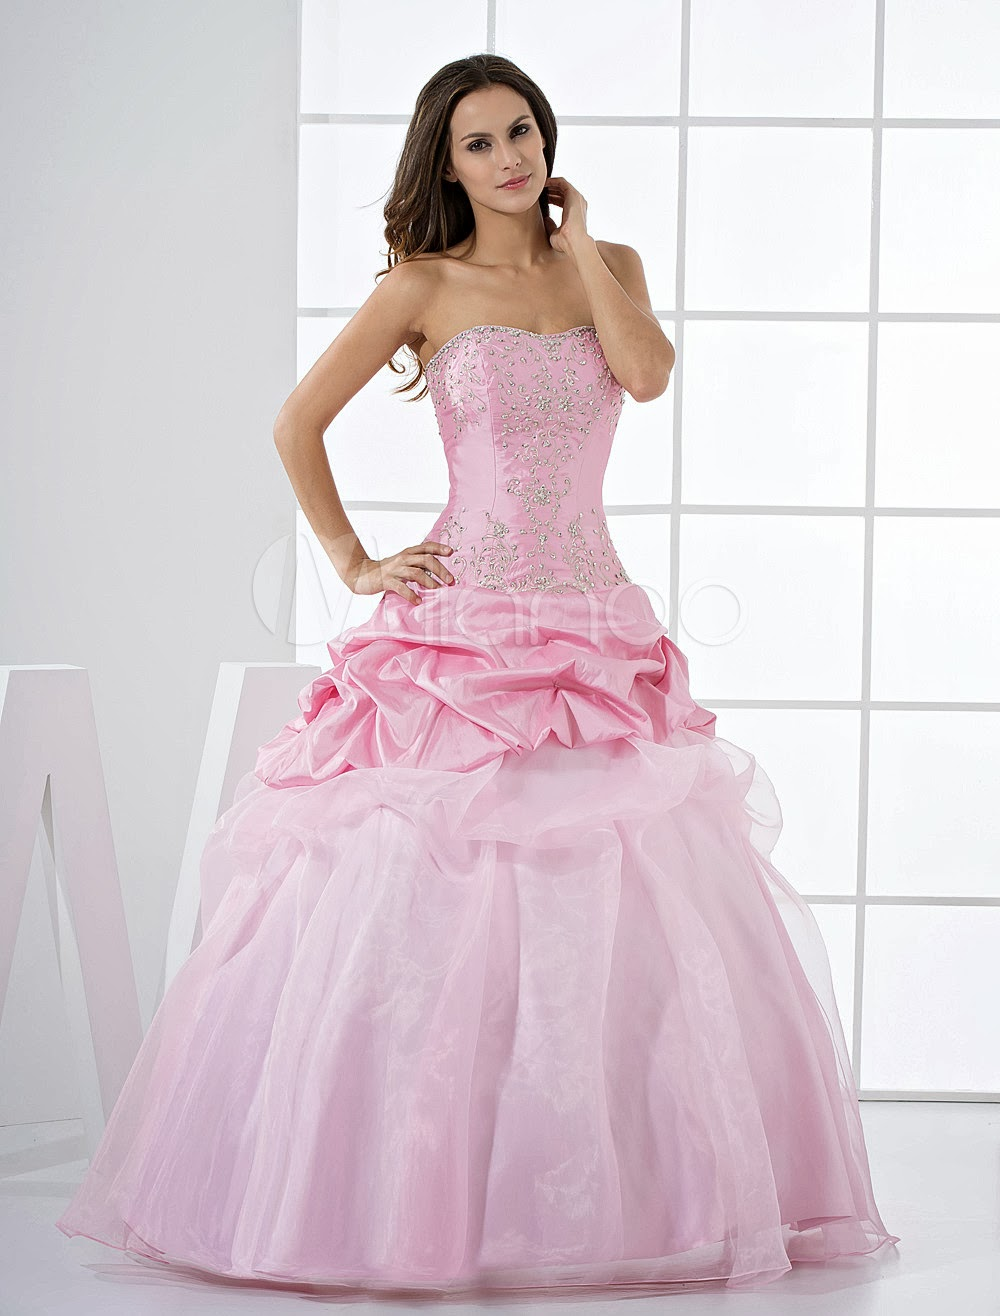 China Wholesale Dresses - Pink Princess Strapless Beaded Ruffles Floor Length Taffeta Ball Gown